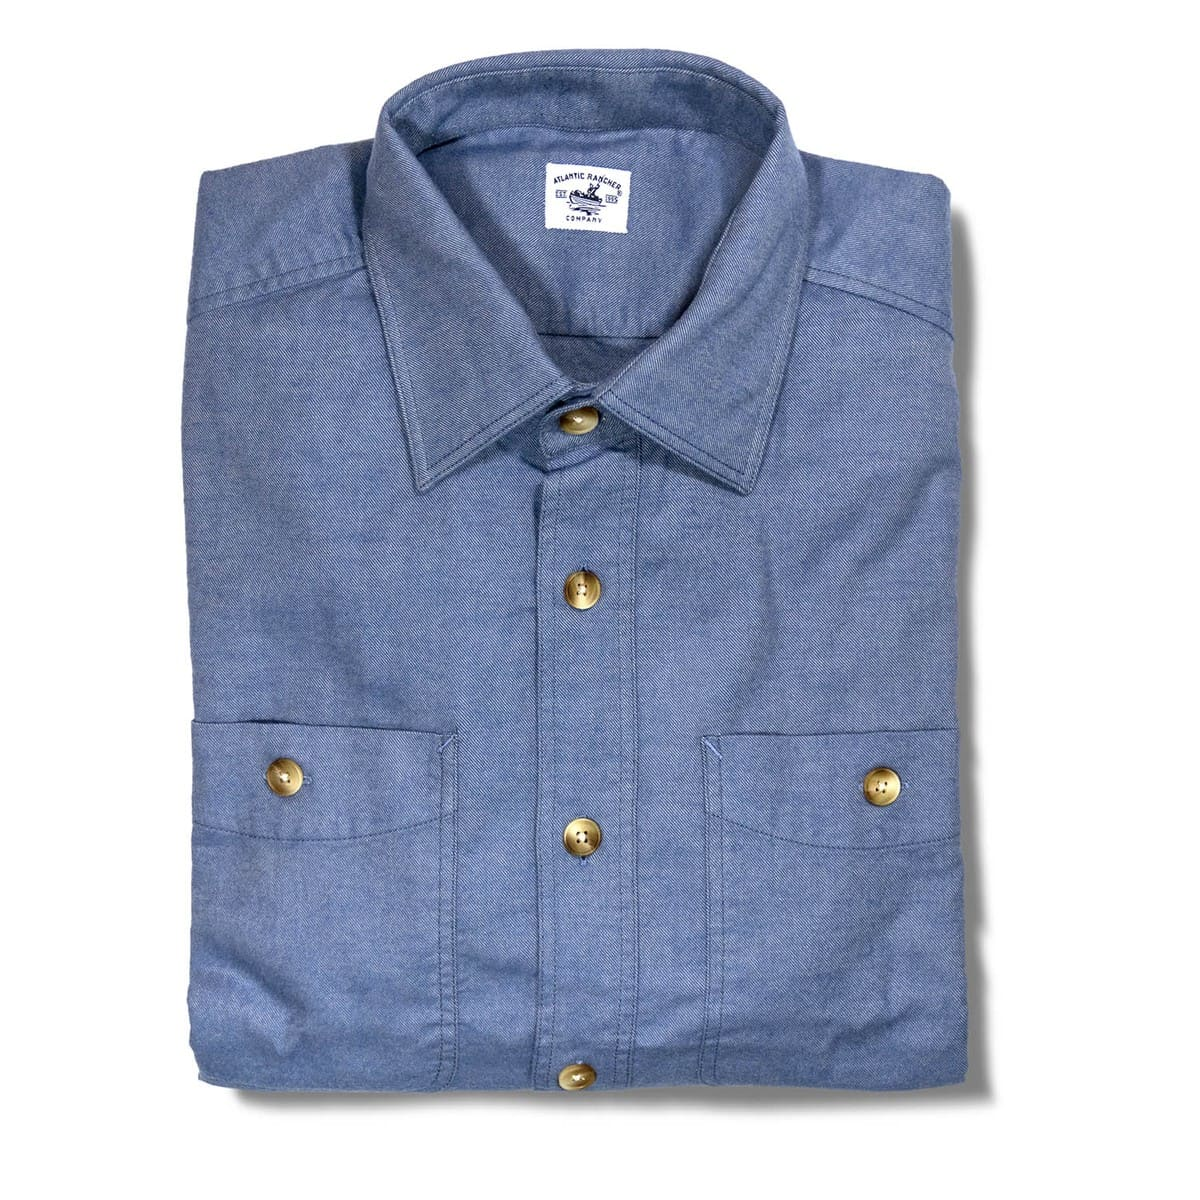 Buy The Saltwash Flannel Dock Shirt - Slate Blue